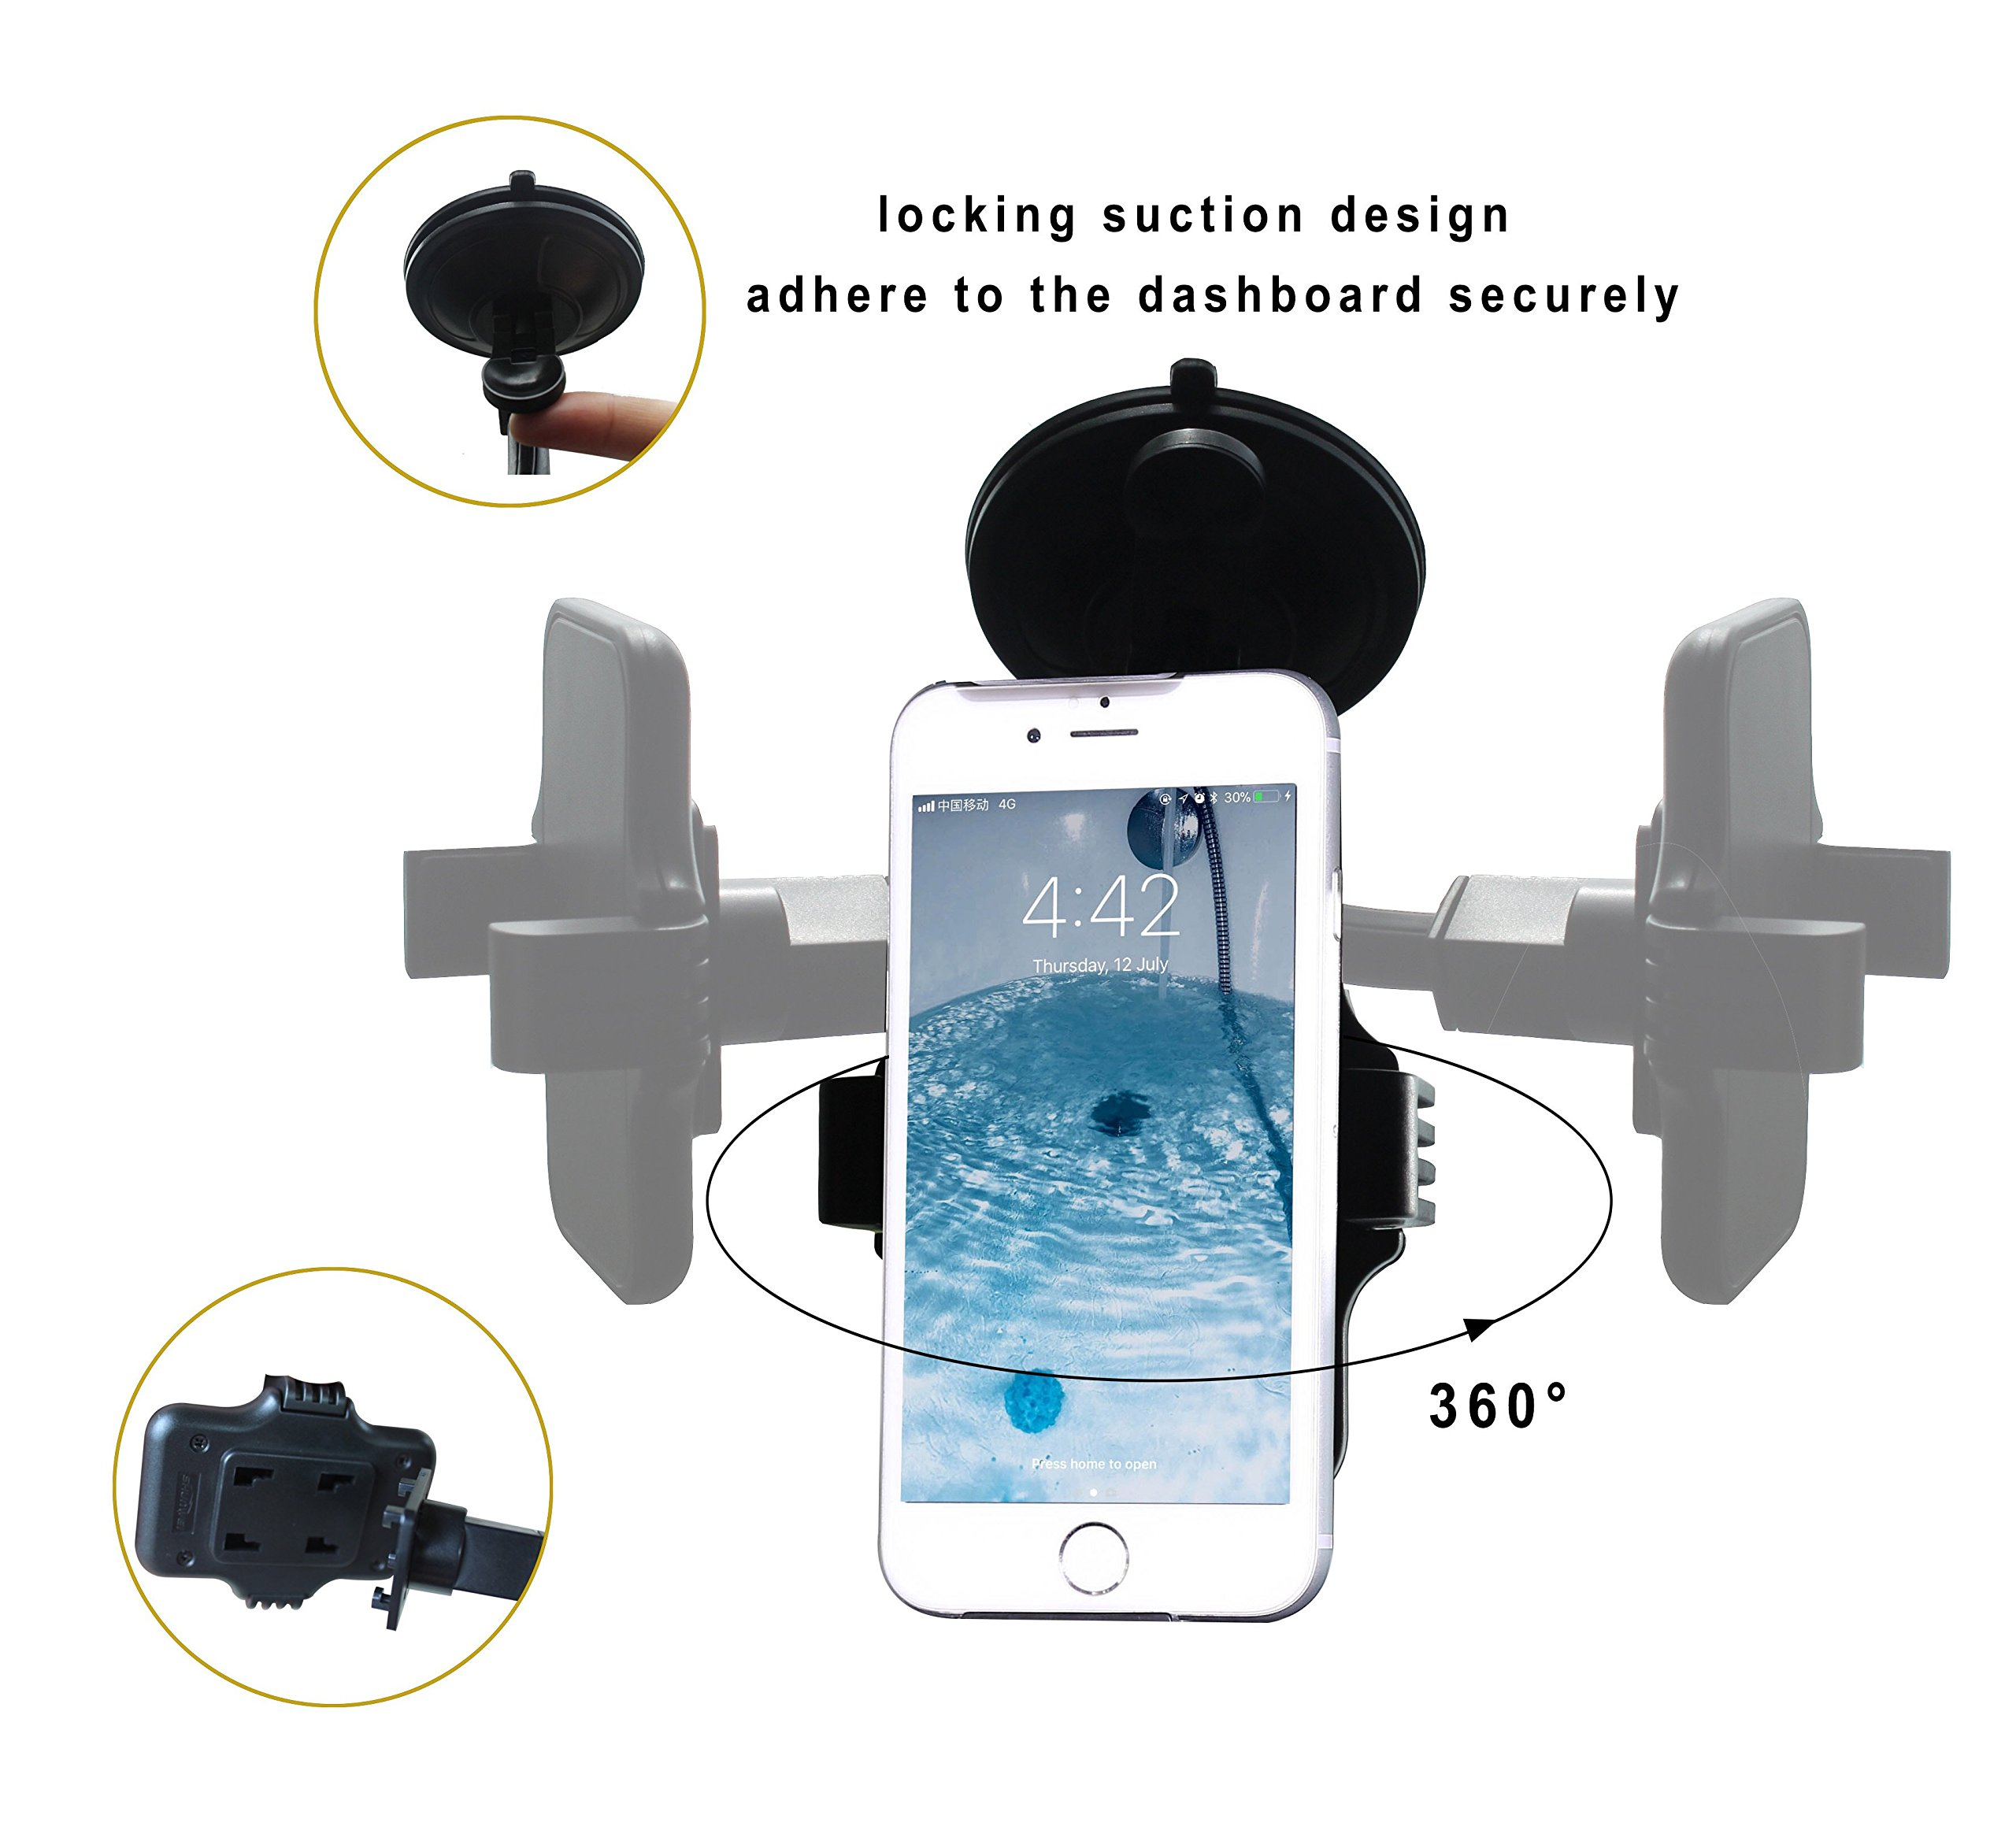 Durapower Cell Phone Holder for Car, Windshield Arm Car Mount with One Button Design and Anti-Skid Base for iPhone 8/7/7P/6s/6P/5S, Galaxy S5/S6/S7/S8, Google, LG, Huawei and More